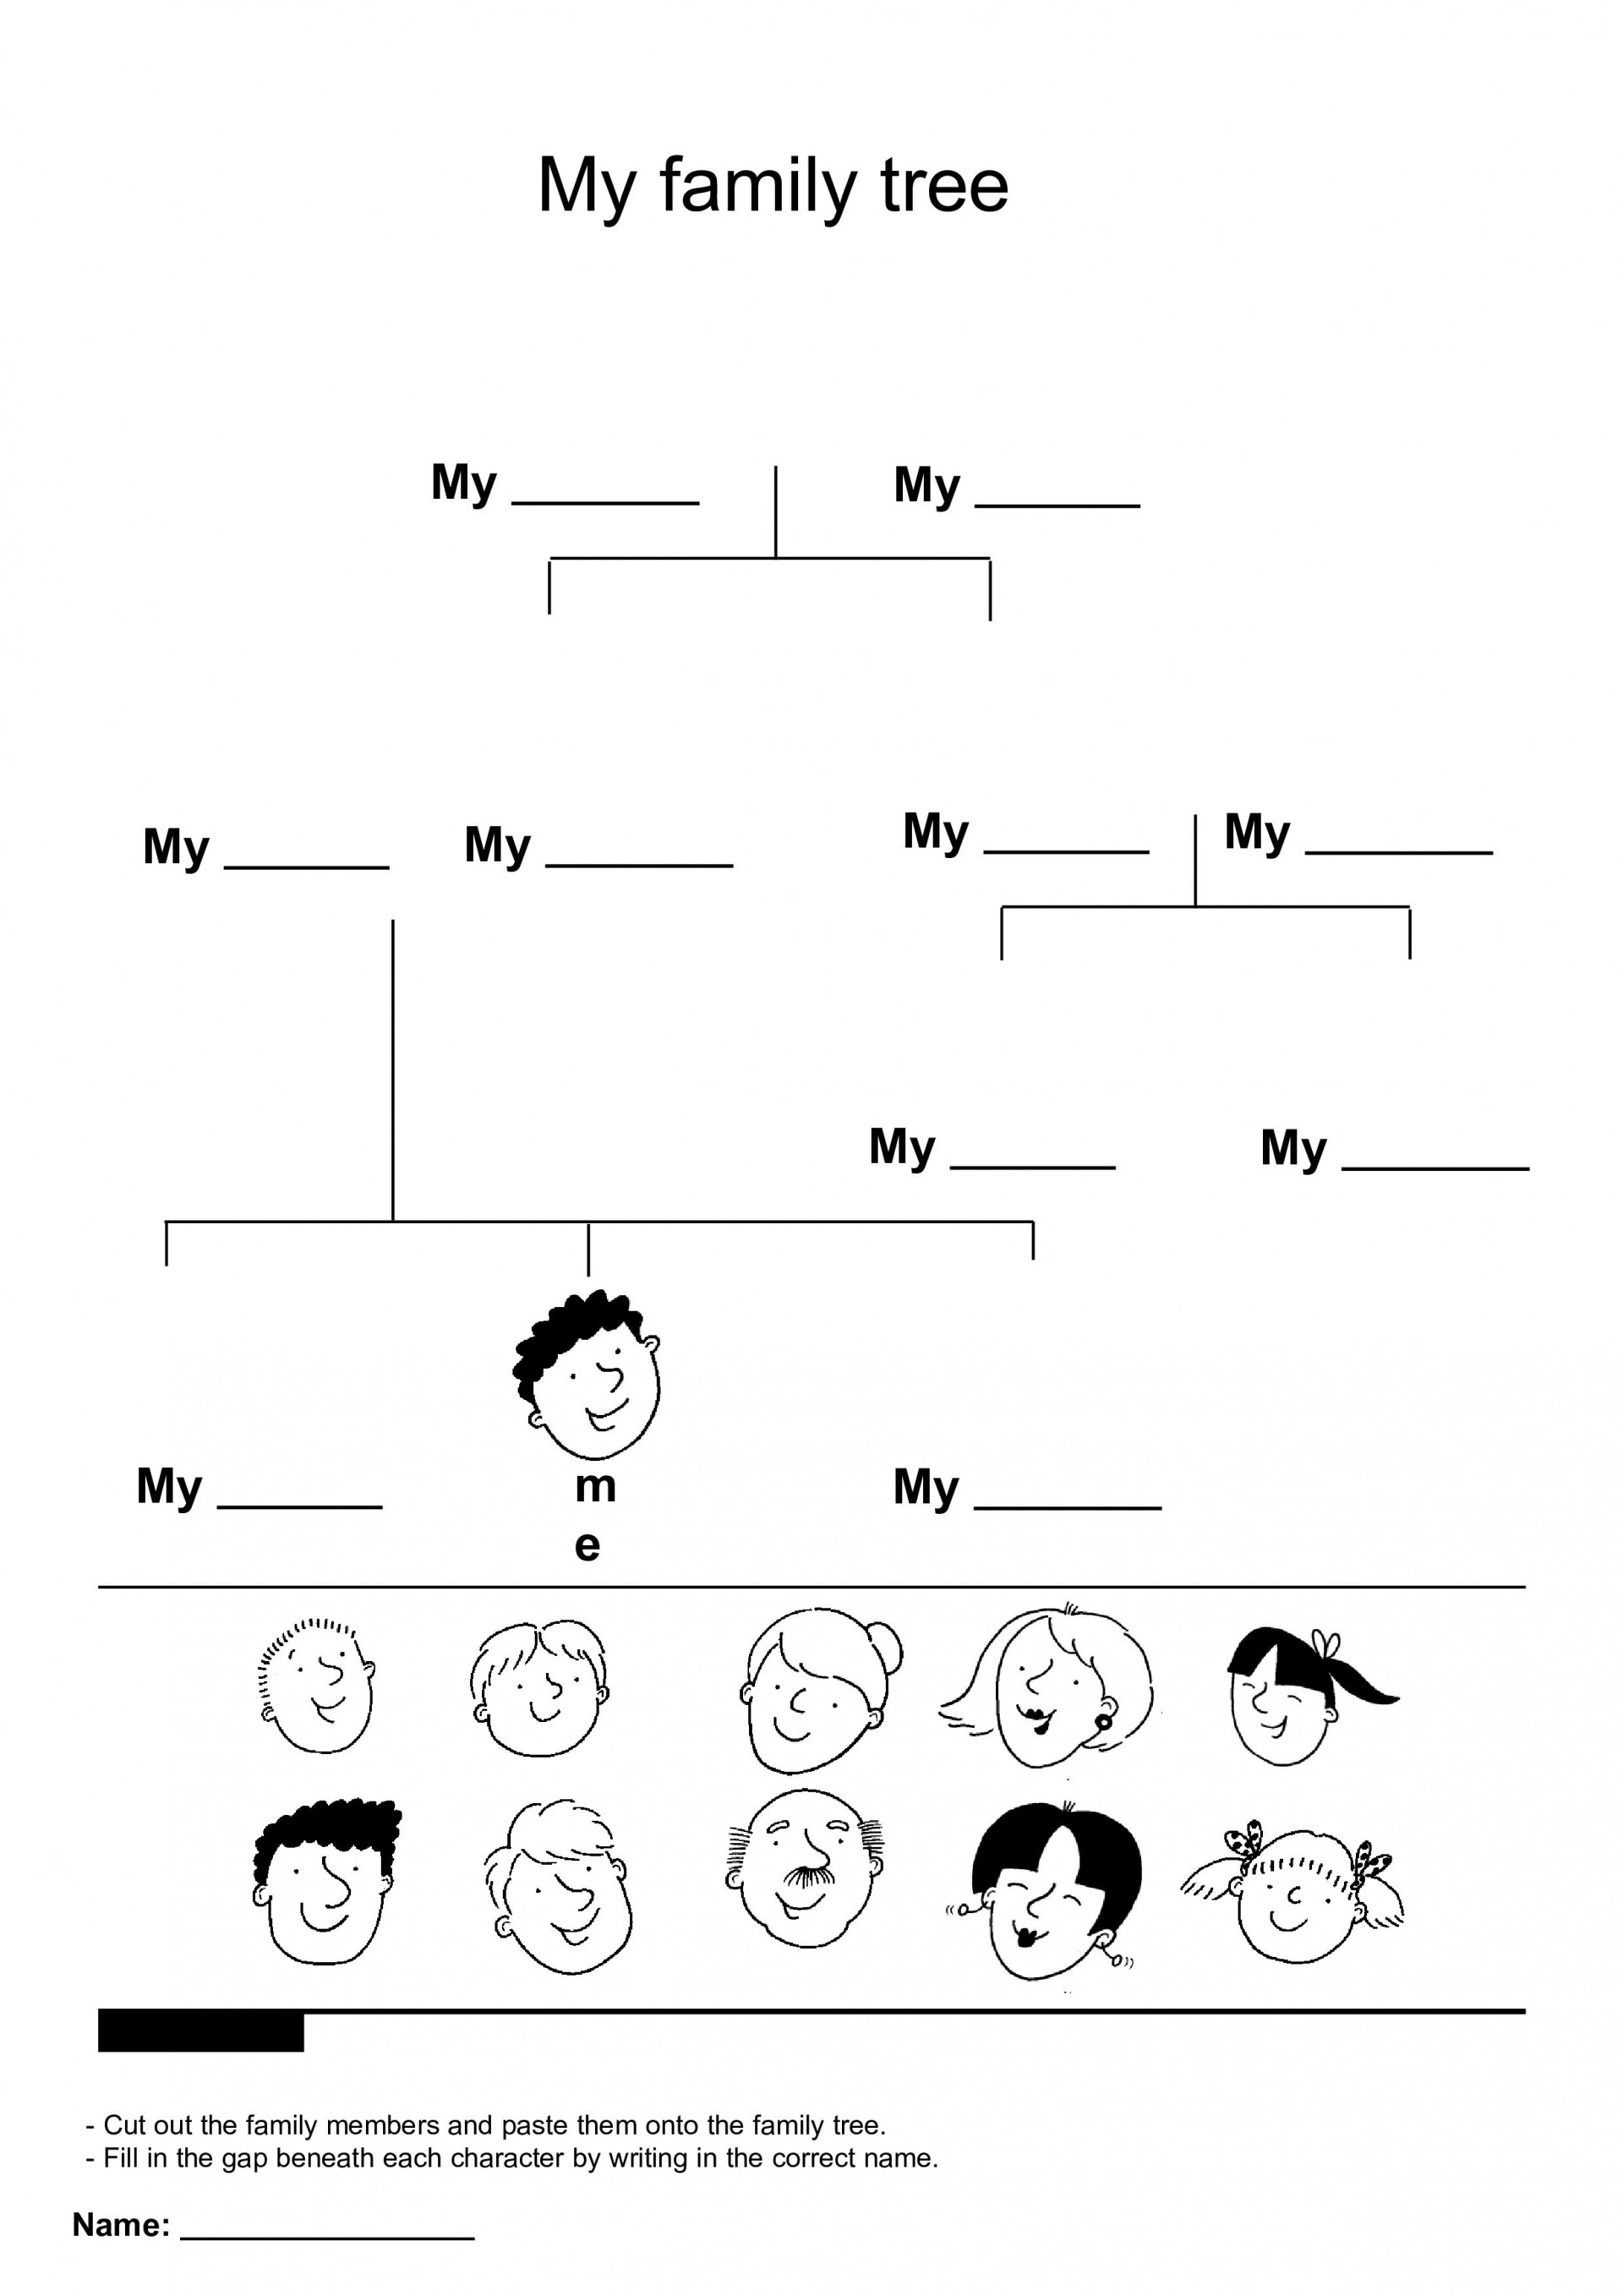 003 Unique Family Tree Template Google Doc Picture  Docs I There A On Free Editable1920